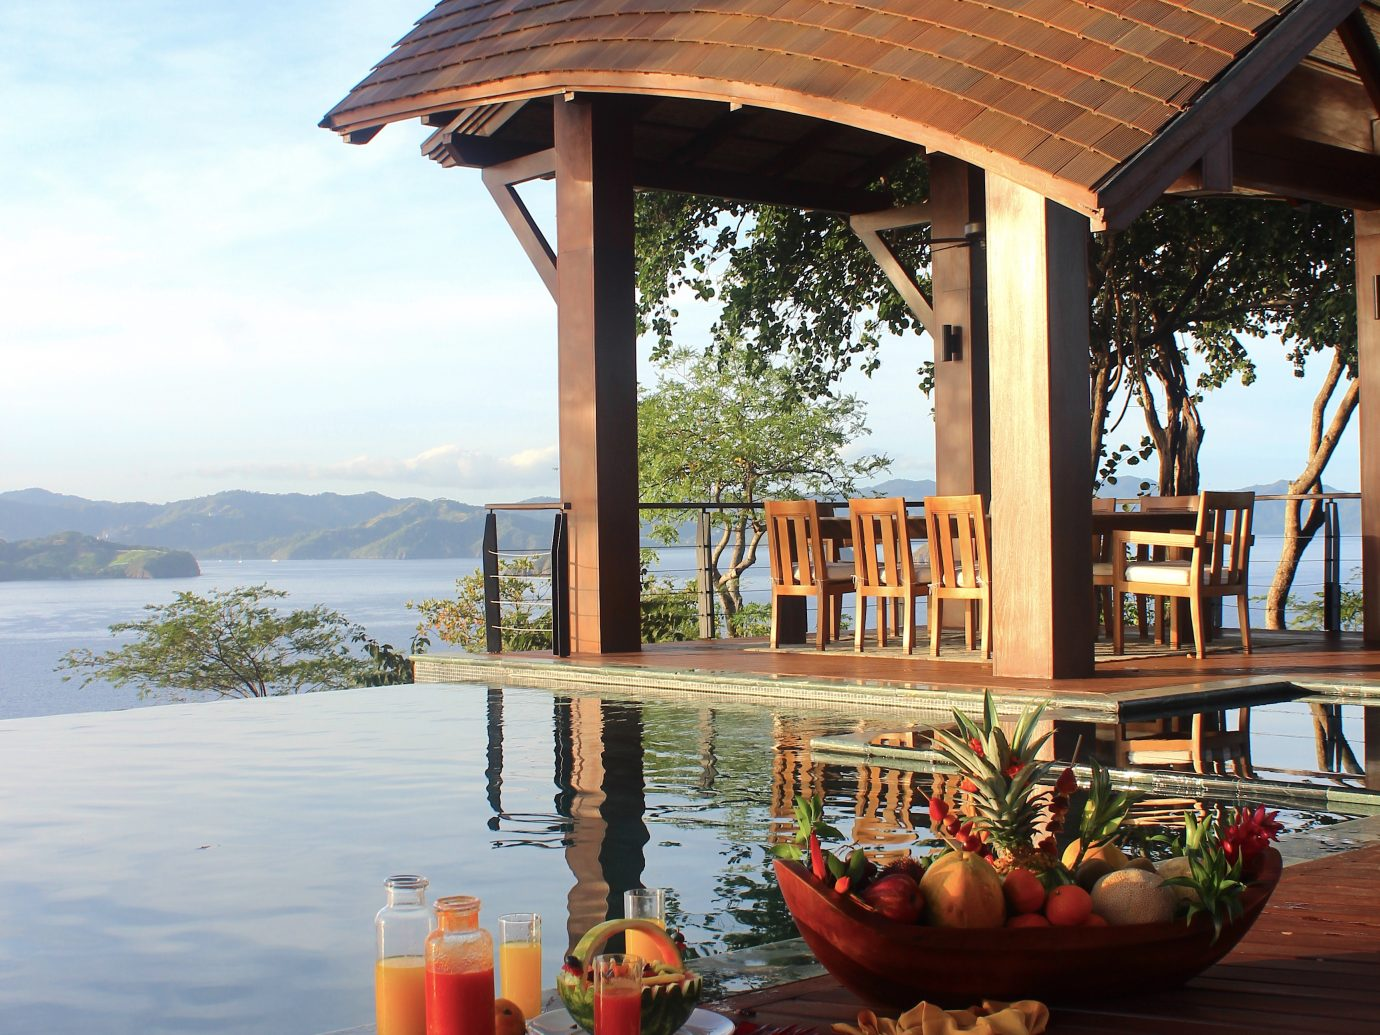 Breakfast at the Four Seasons Costa Rica